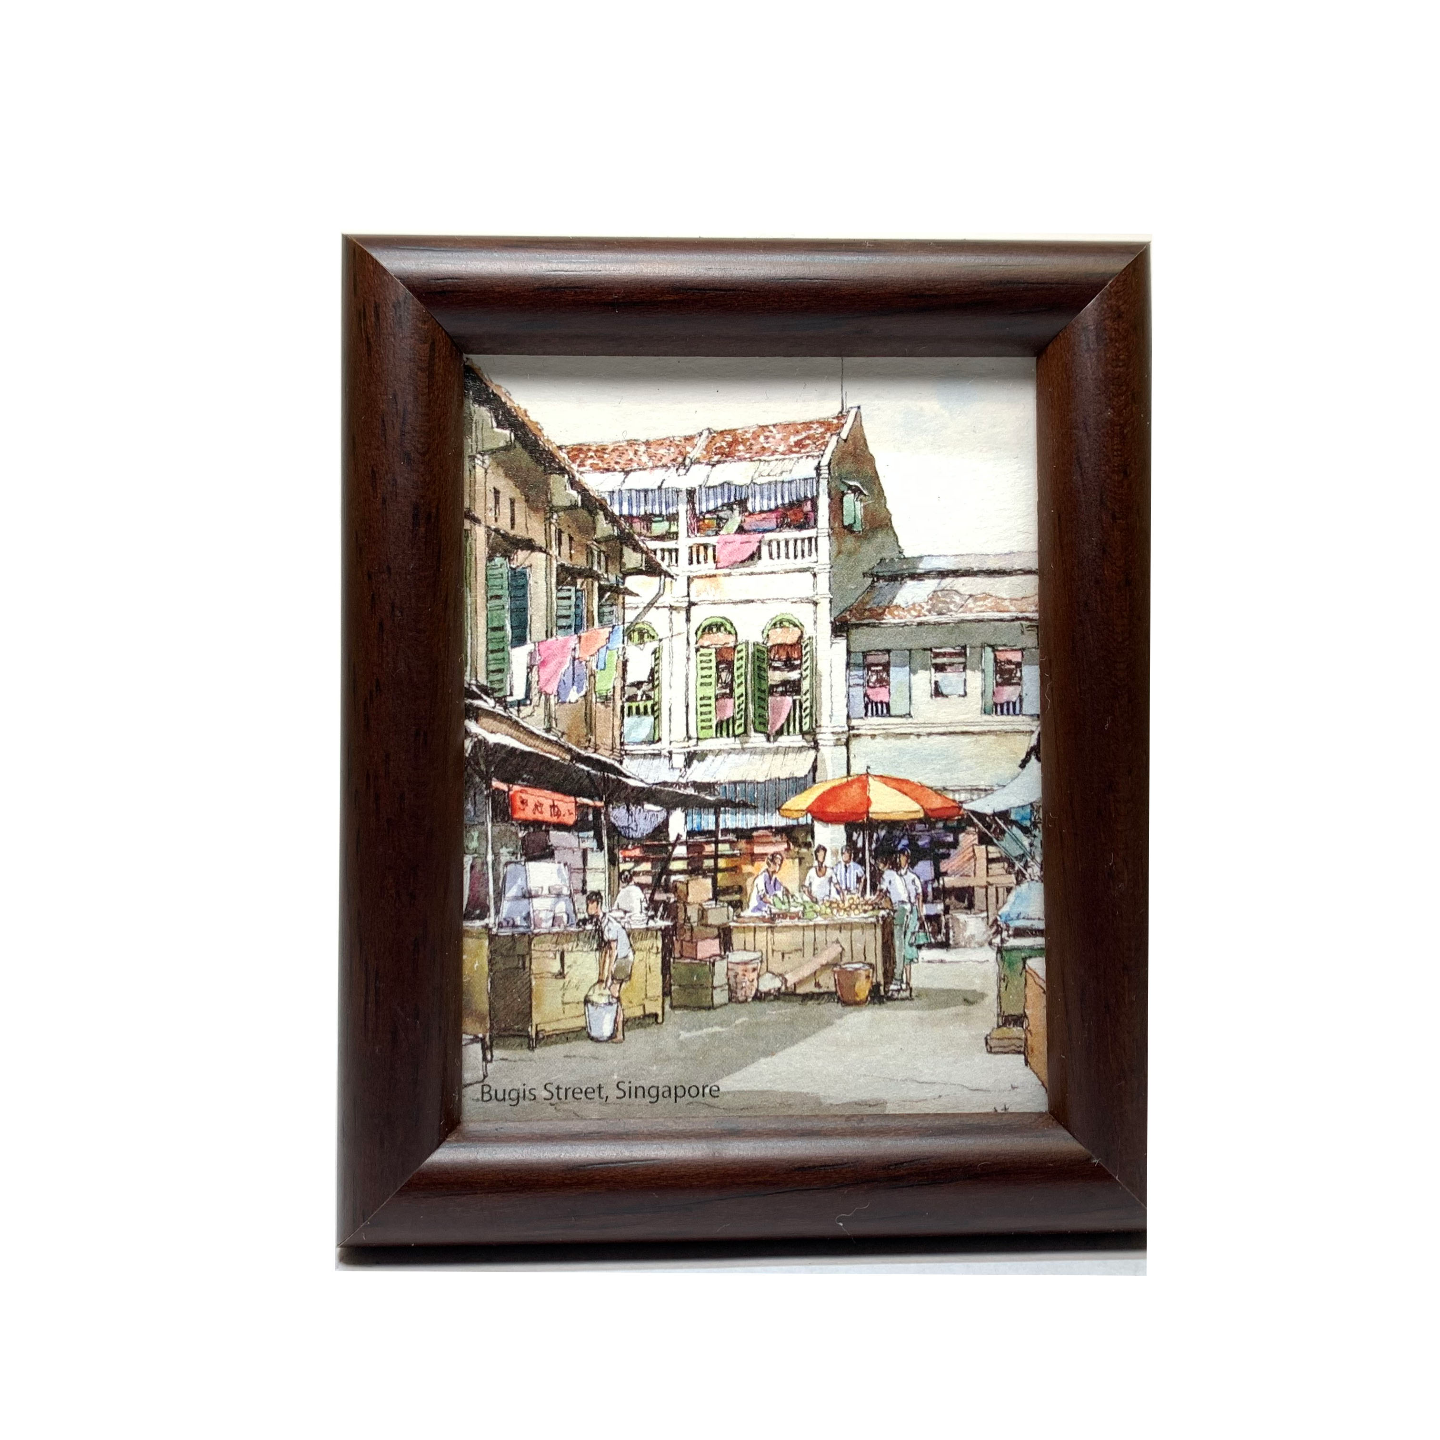 Mini Artframe Water Colour Magnet: Bugis Street (Portrait) by Loy Chye Chuan